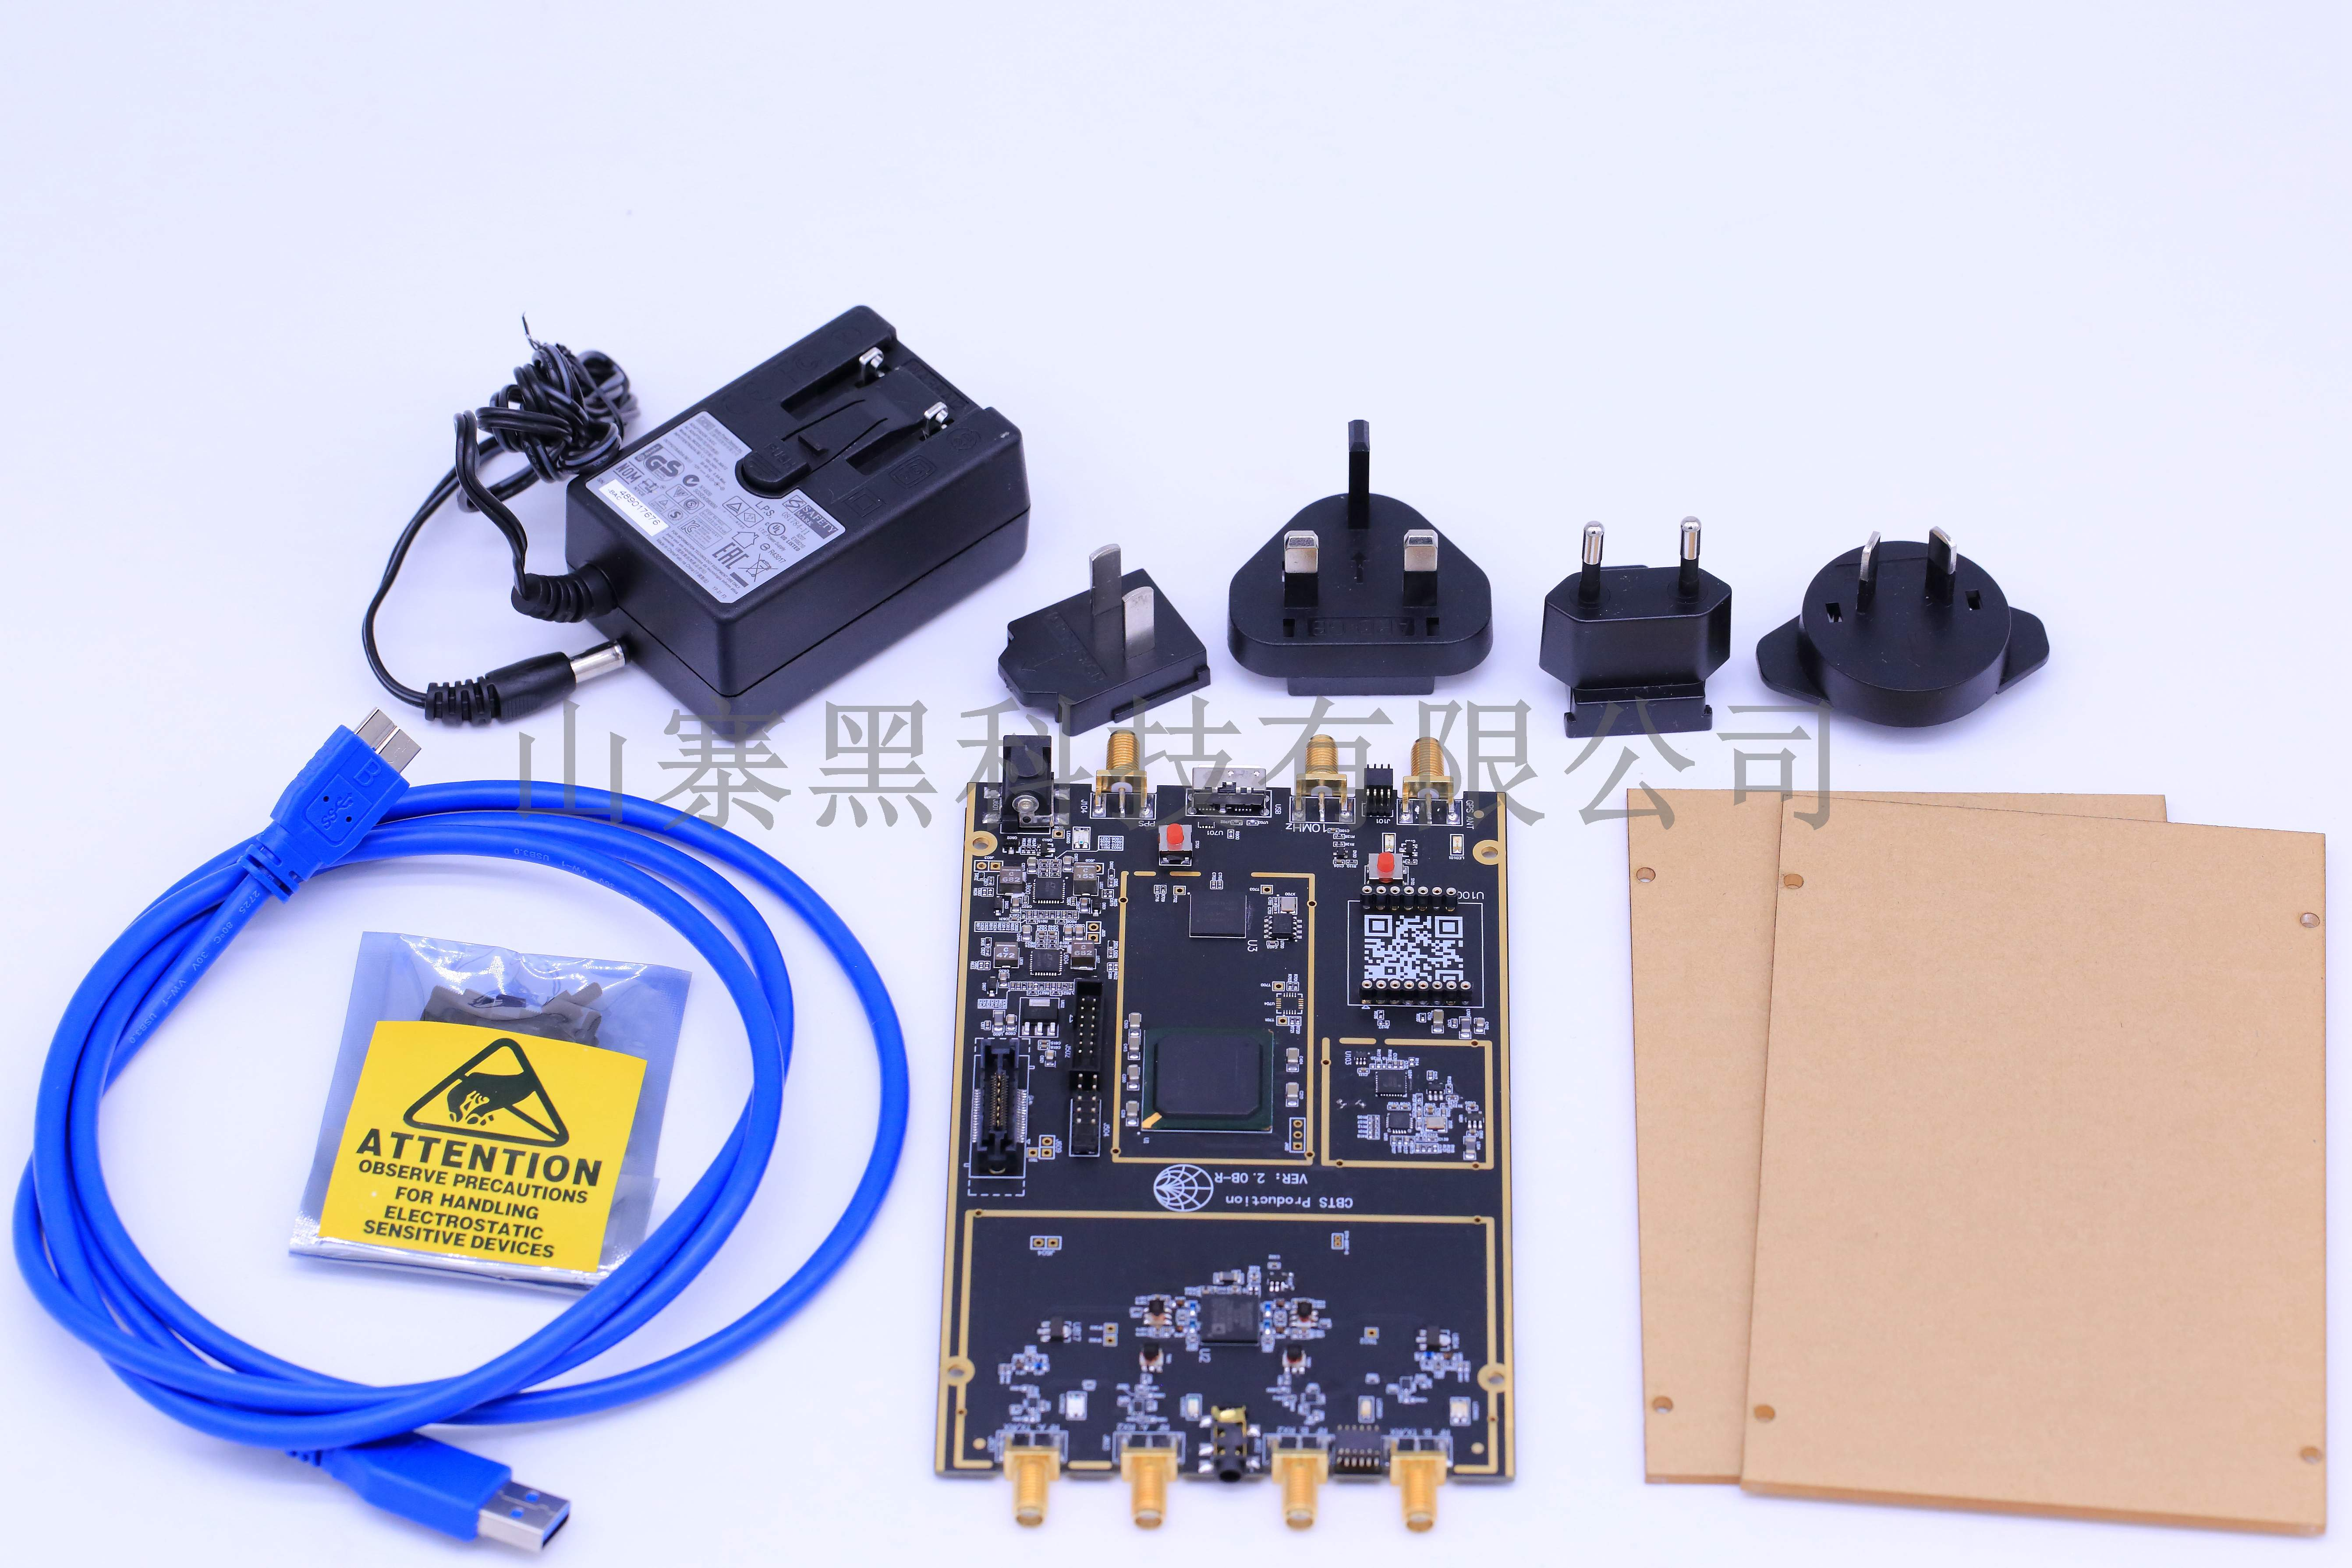 Details about AD9361 70MHz – 6GHz SDR Software Defined Radio USB3 0  Compatible with USRP B210